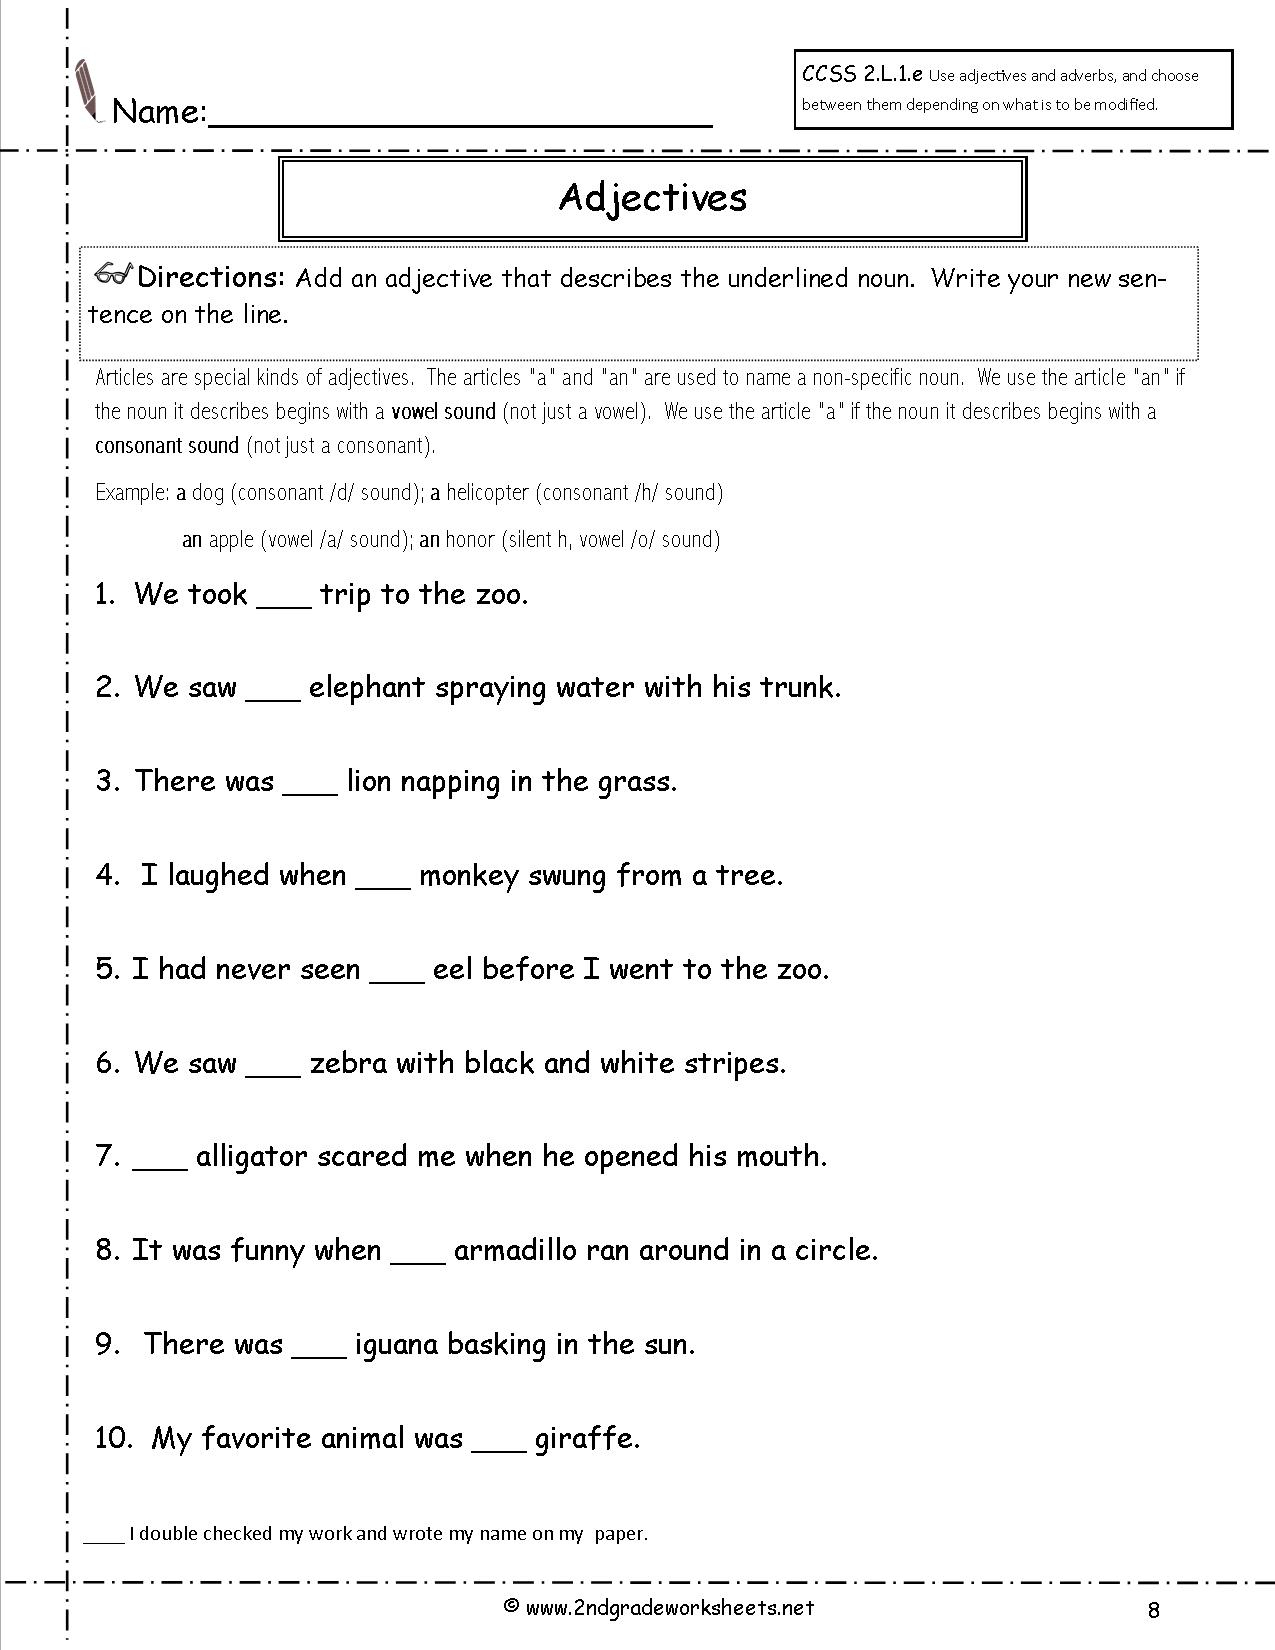 Free Language/grammar Worksheets And Printouts | 3Rd Grade Grammar Worksheets Printable